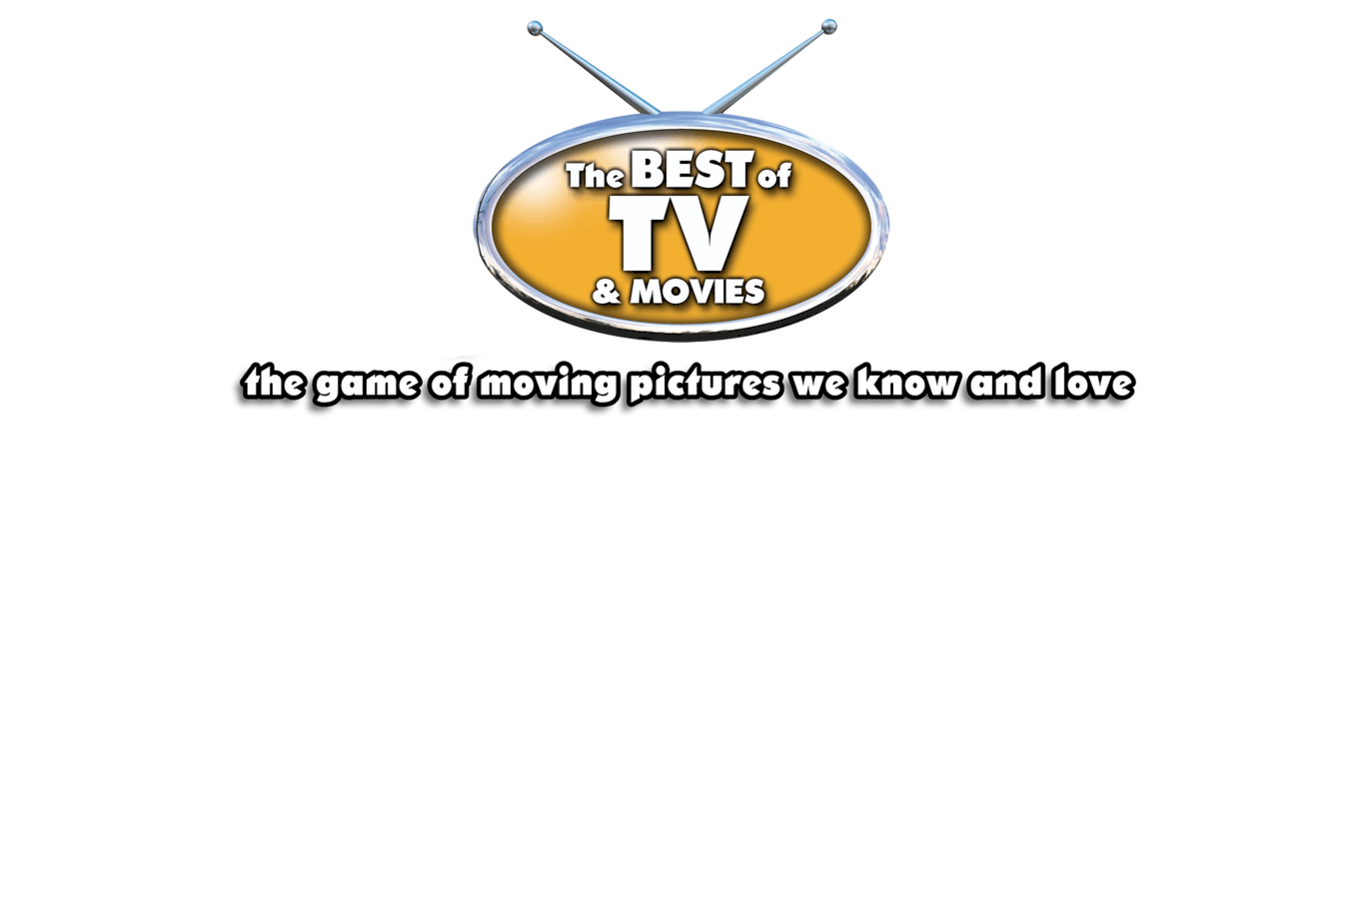 Best of TV and Movies